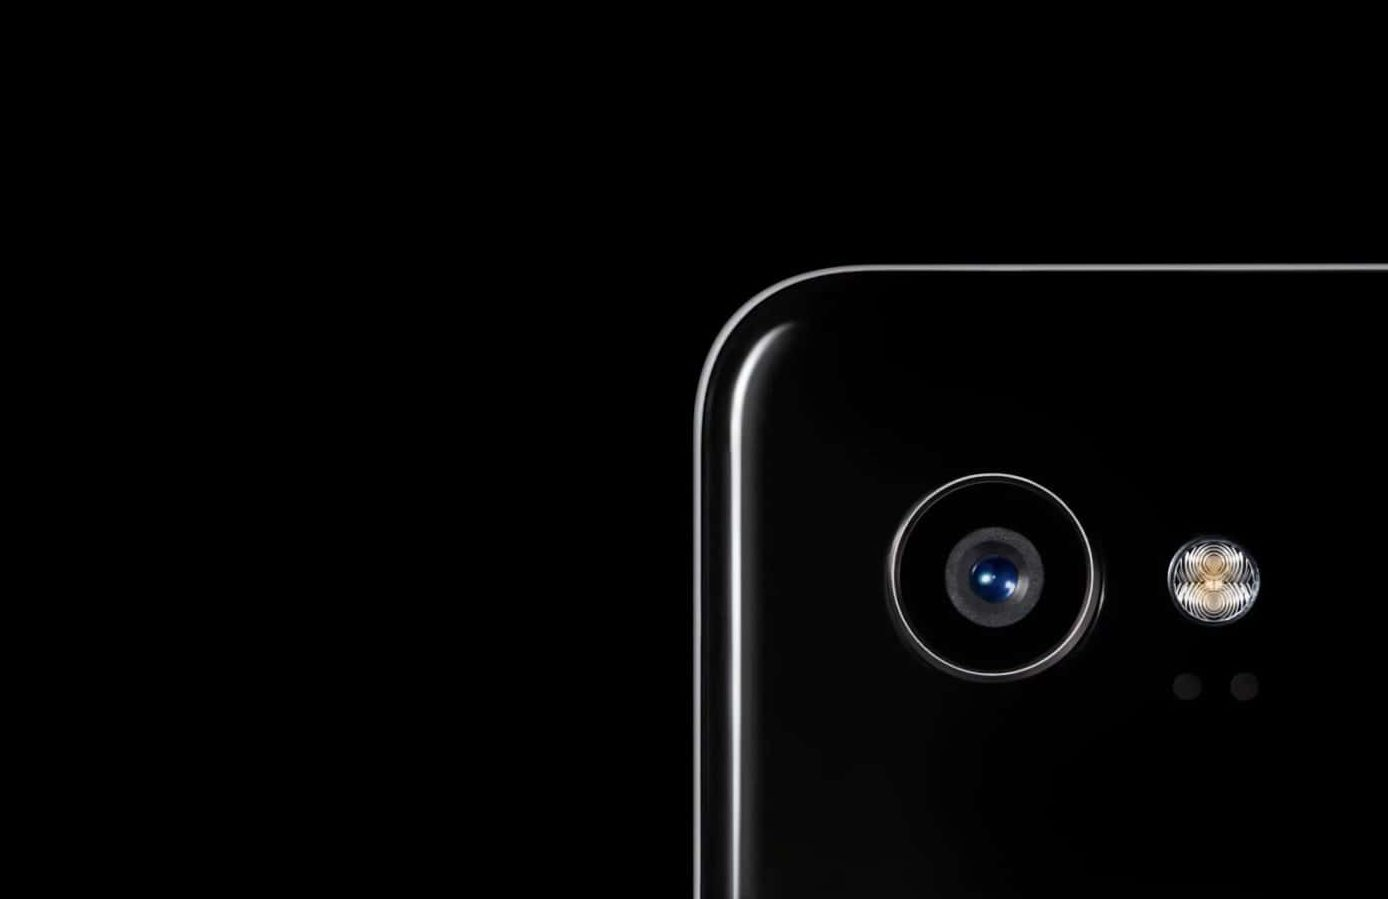 Google Pixel 2 XL in Black With A Camera View